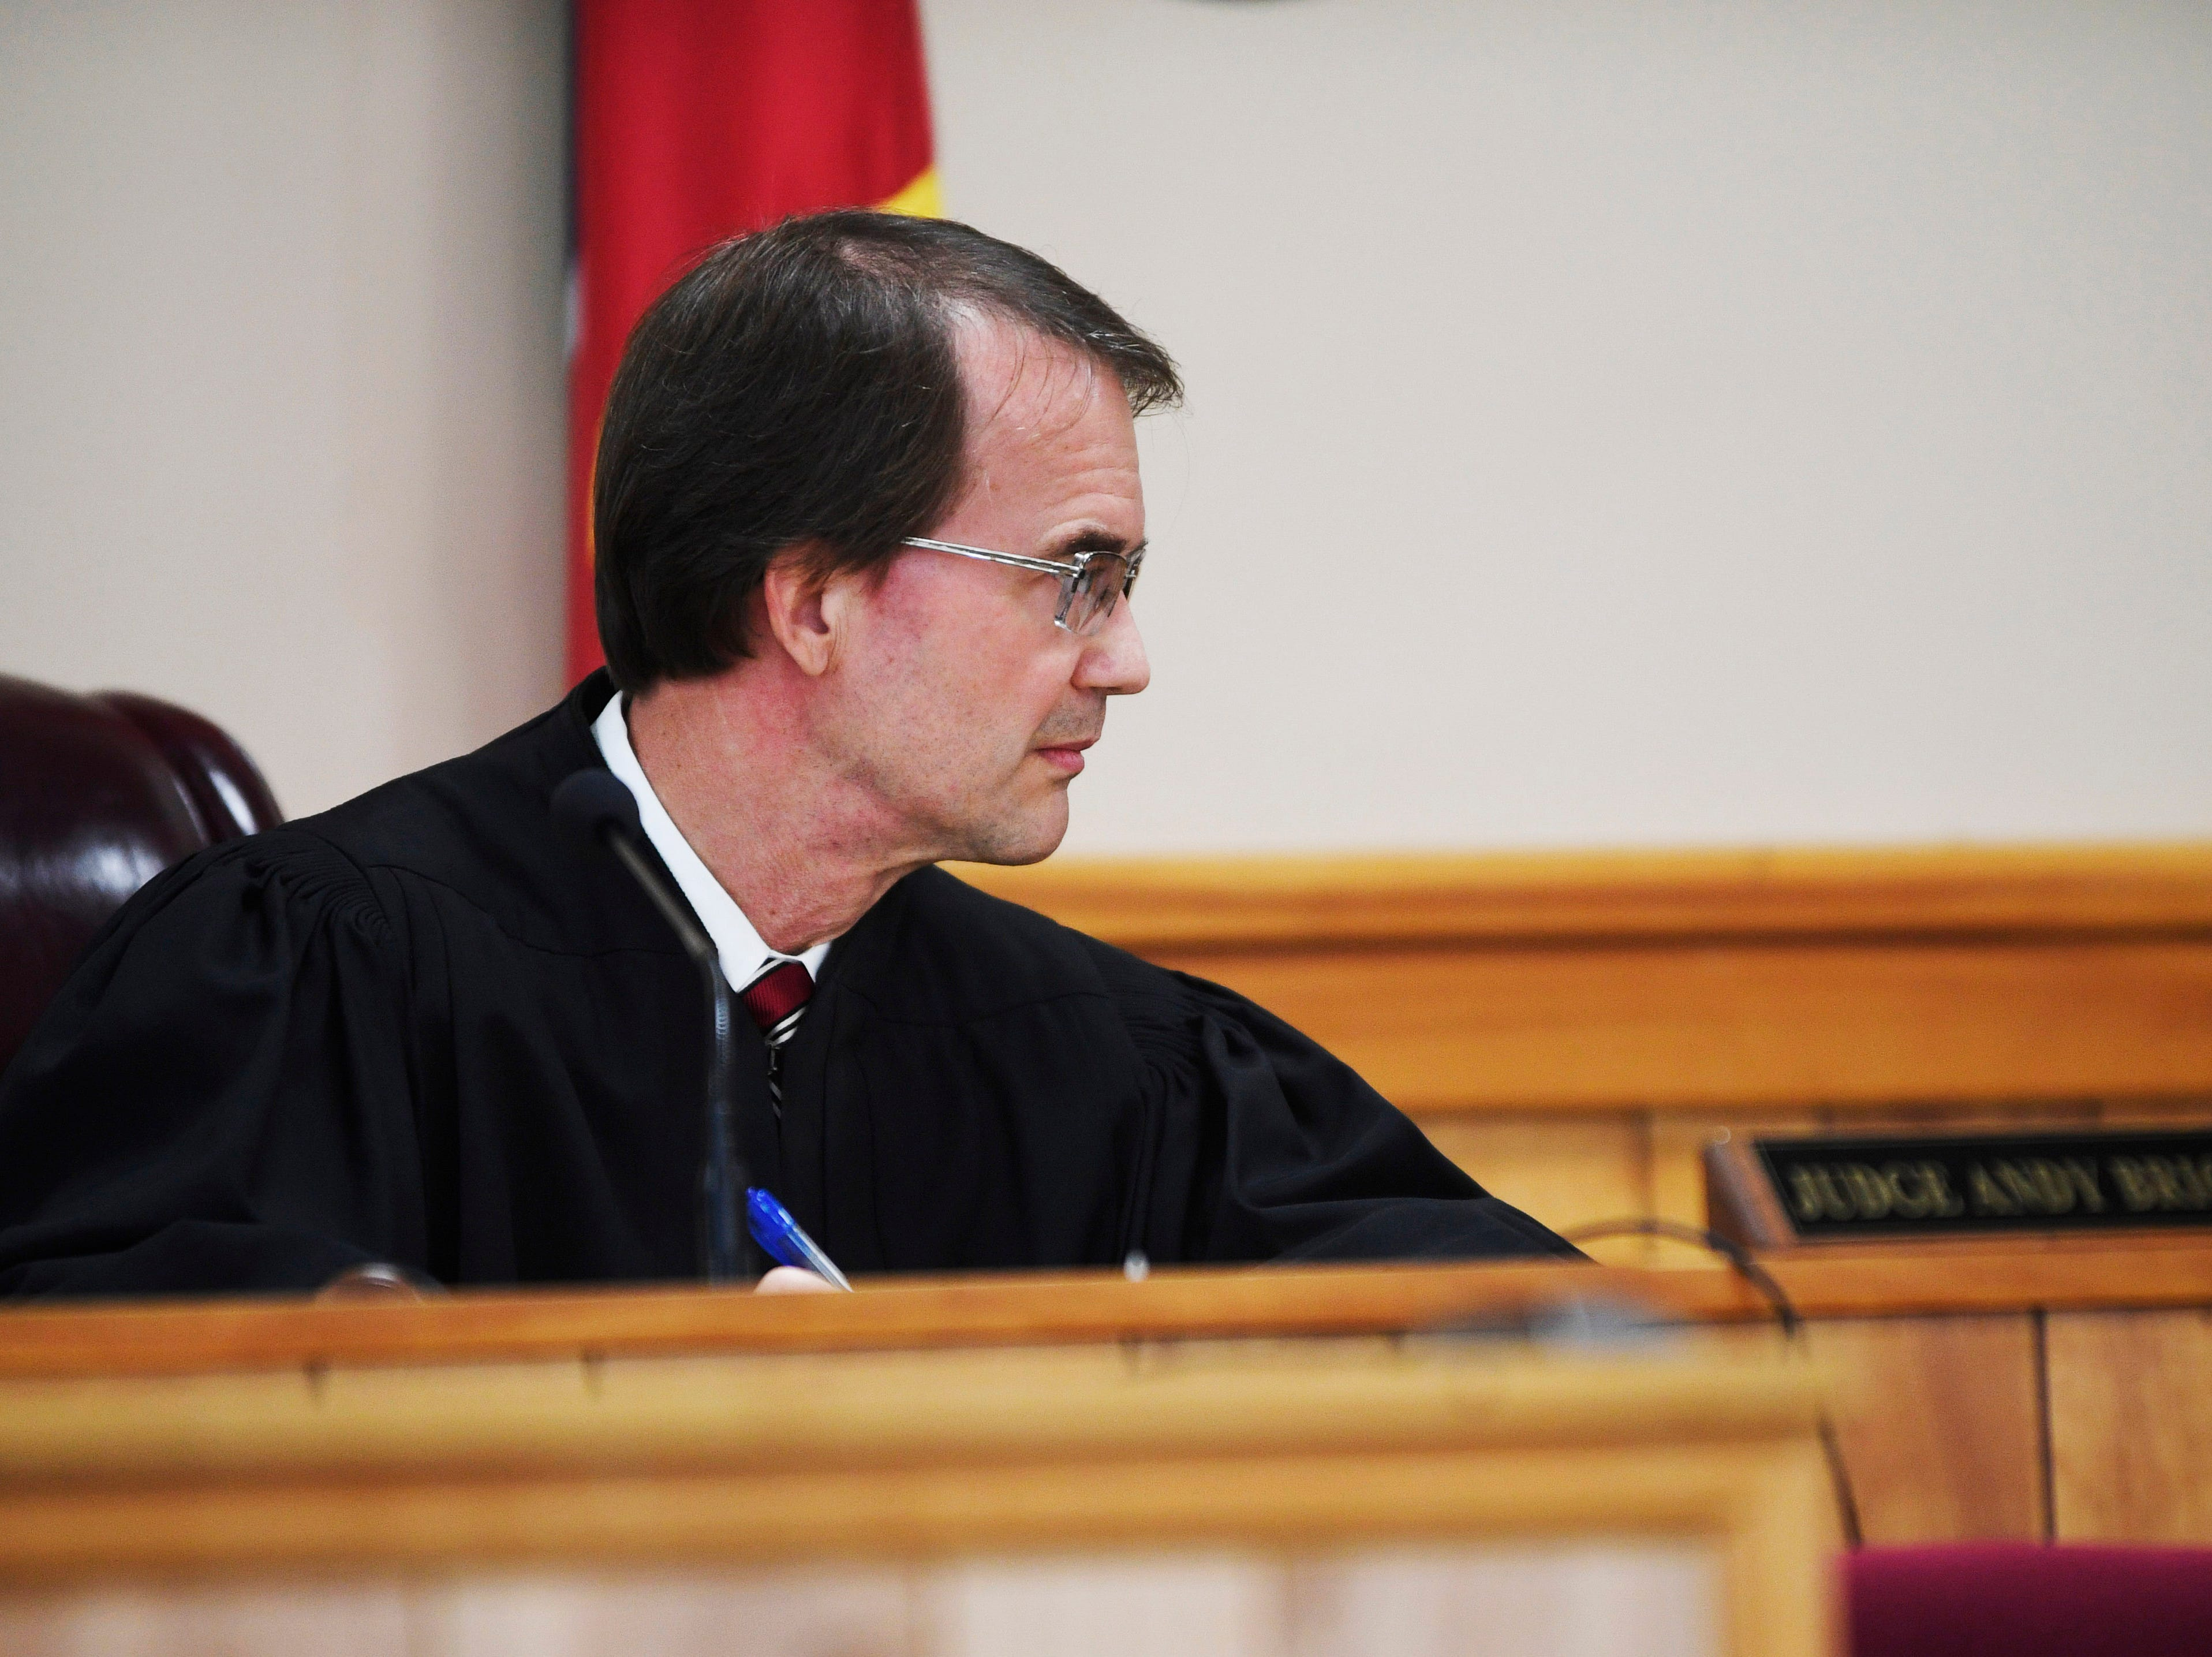 Judge Andy Brigham oversees the preliminary hearing of Kirby Wallace, 53, for charges including the killing of Indian Mound resident Brenda Smith at the Stewart County Courthouse Tuesday, Nov. 6, 2018, in Dover, Tenn. Wallace was caught Oct. 5 following a seven-day manhunt that expanded into Montgomery County.